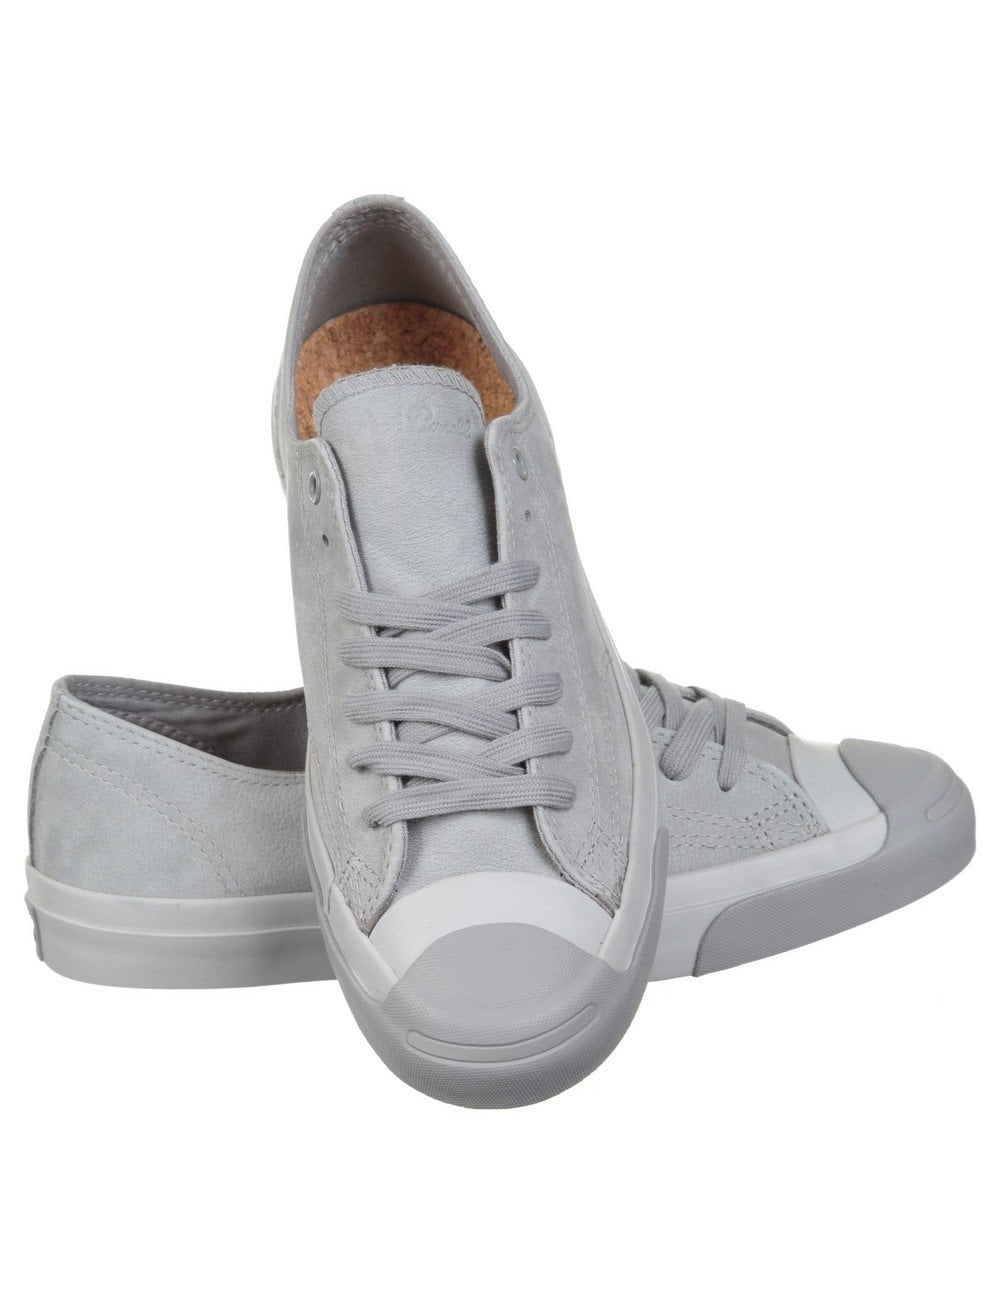 converse jack purcell gray 36zh  Converse Jack Purcell Jack Ox Shoes